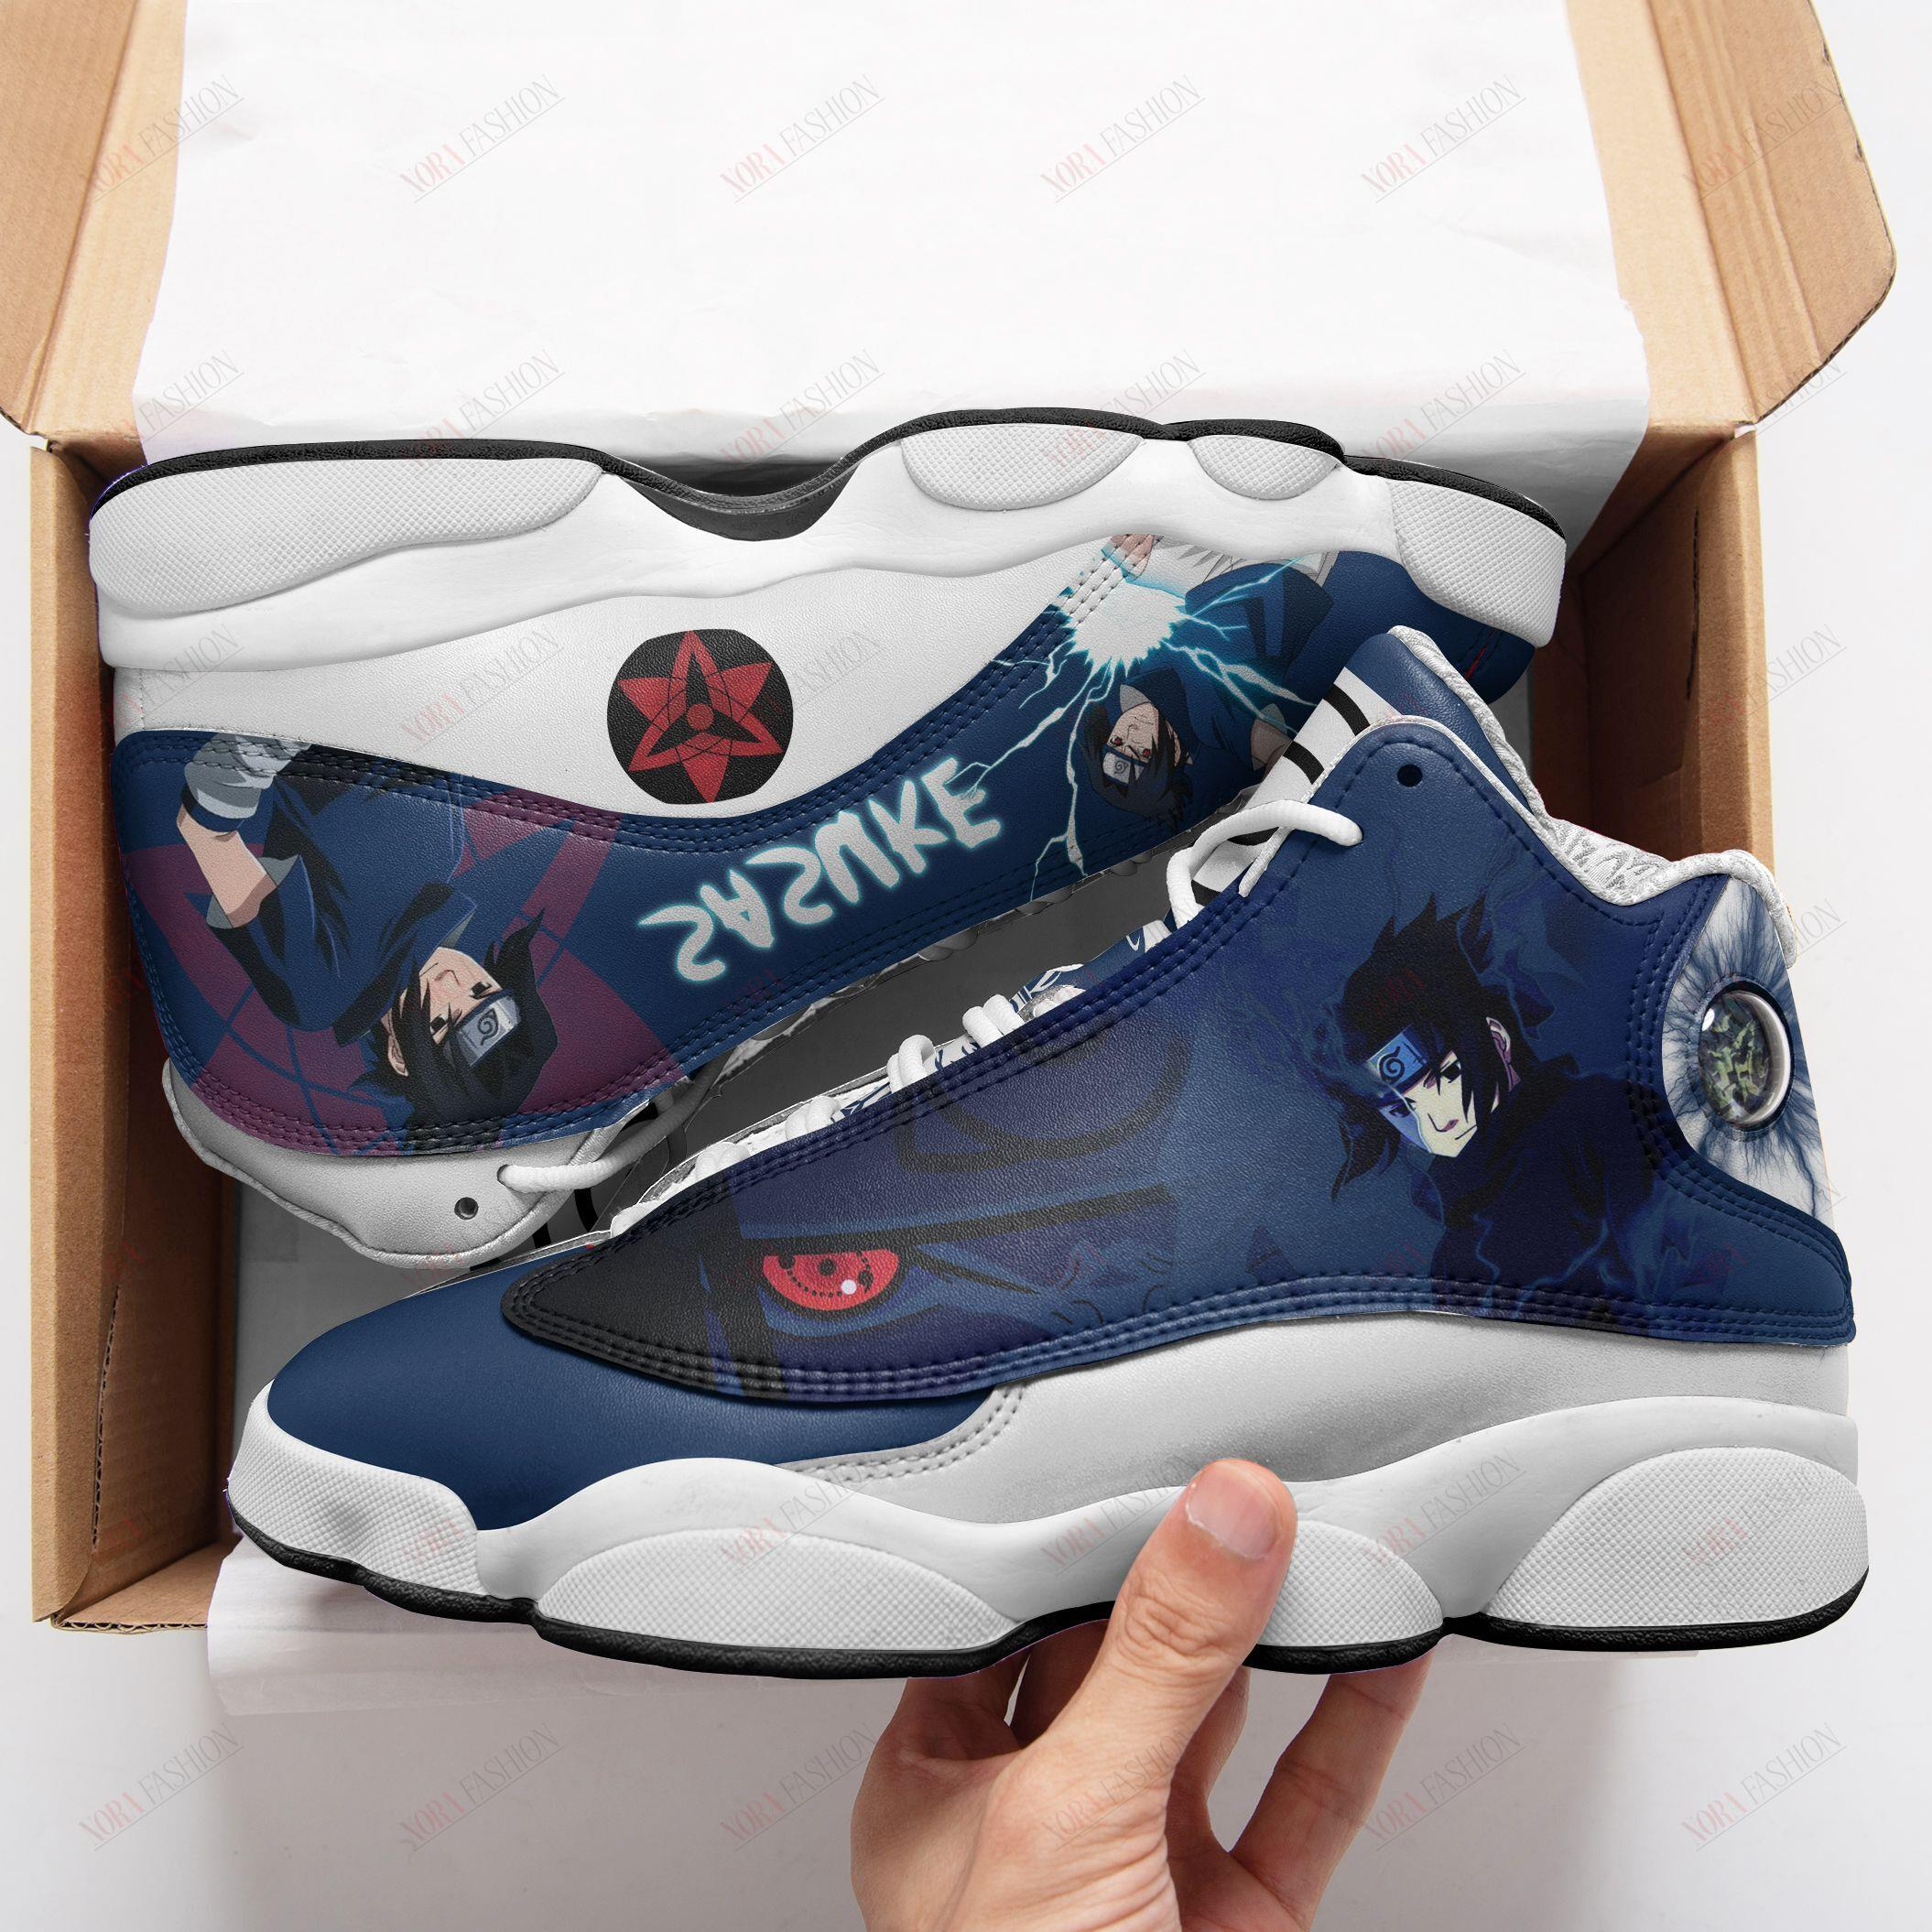 Sasuke Air Jordan 13 Sneakers Sport Shoes Plus Size